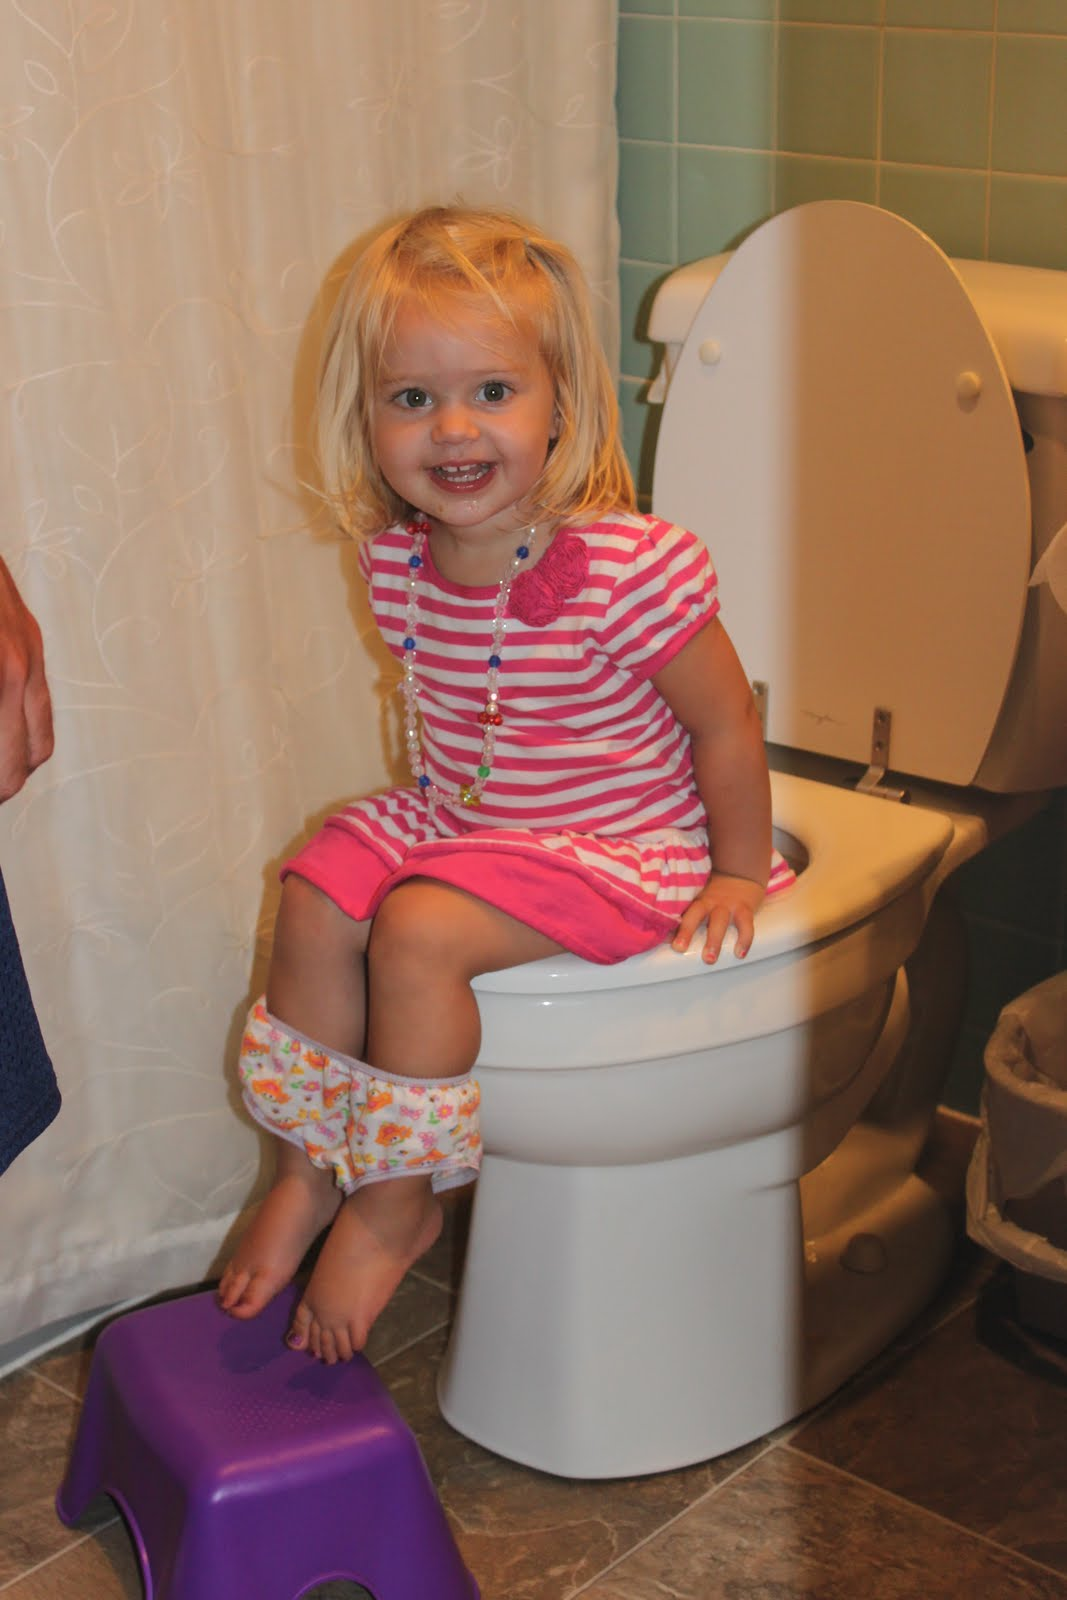 Dislikes must potty trainingafraid of peeing in the potty her